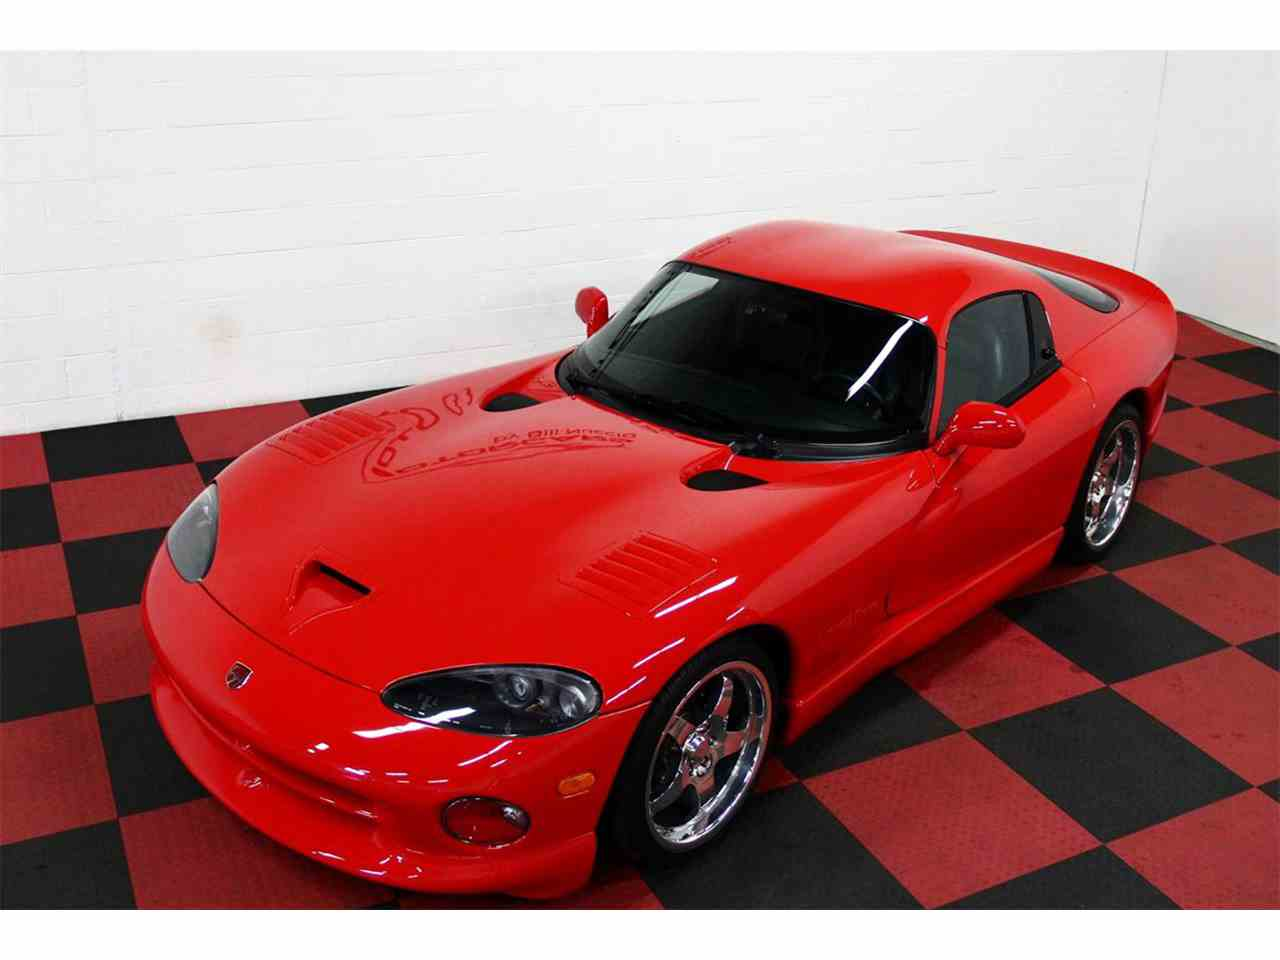 Large Picture of '98 Dodge Viper located in Illinois - $47,000.00 Offered by a Private Seller - LSFT